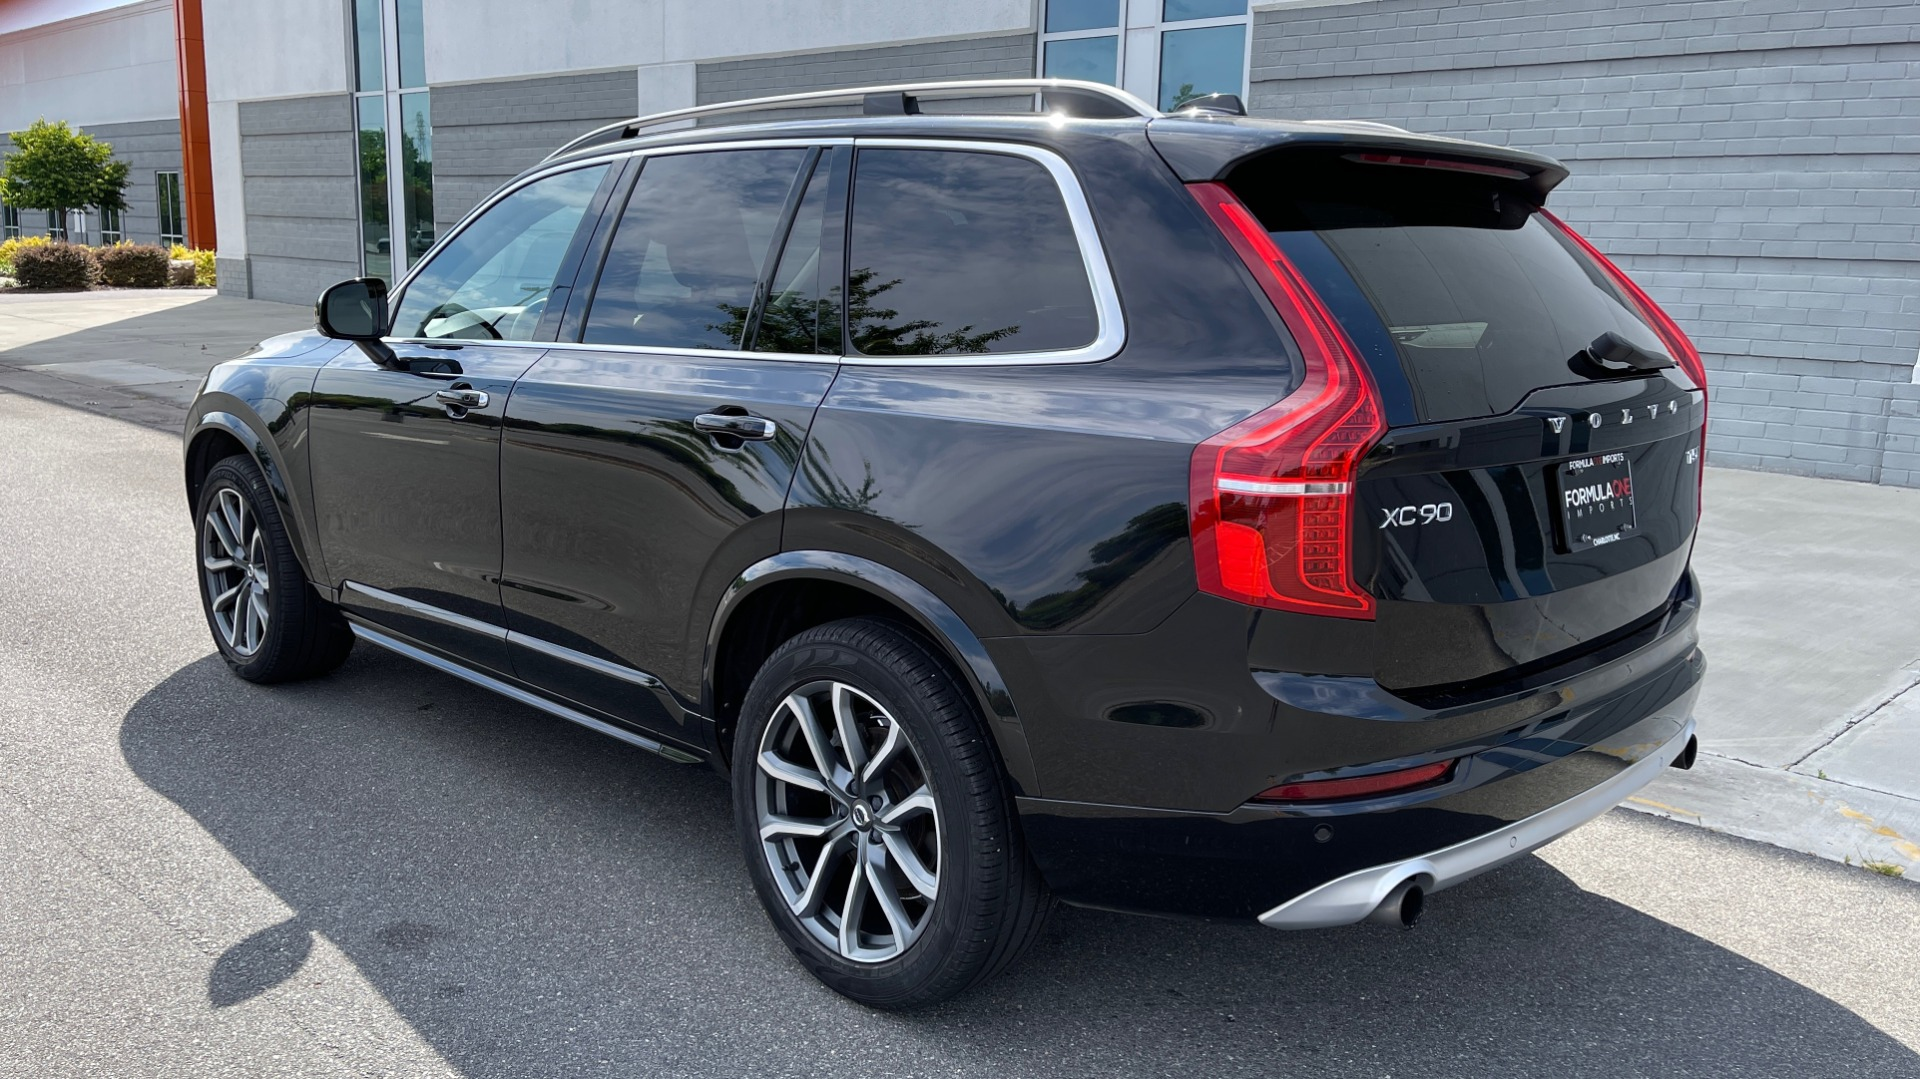 Used 2018 Volvo XC90 T5 AWD MOMENTUM PLUS / NAV / SUNROOF / 3-ROW / REARVIEW for sale $40,295 at Formula Imports in Charlotte NC 28227 4